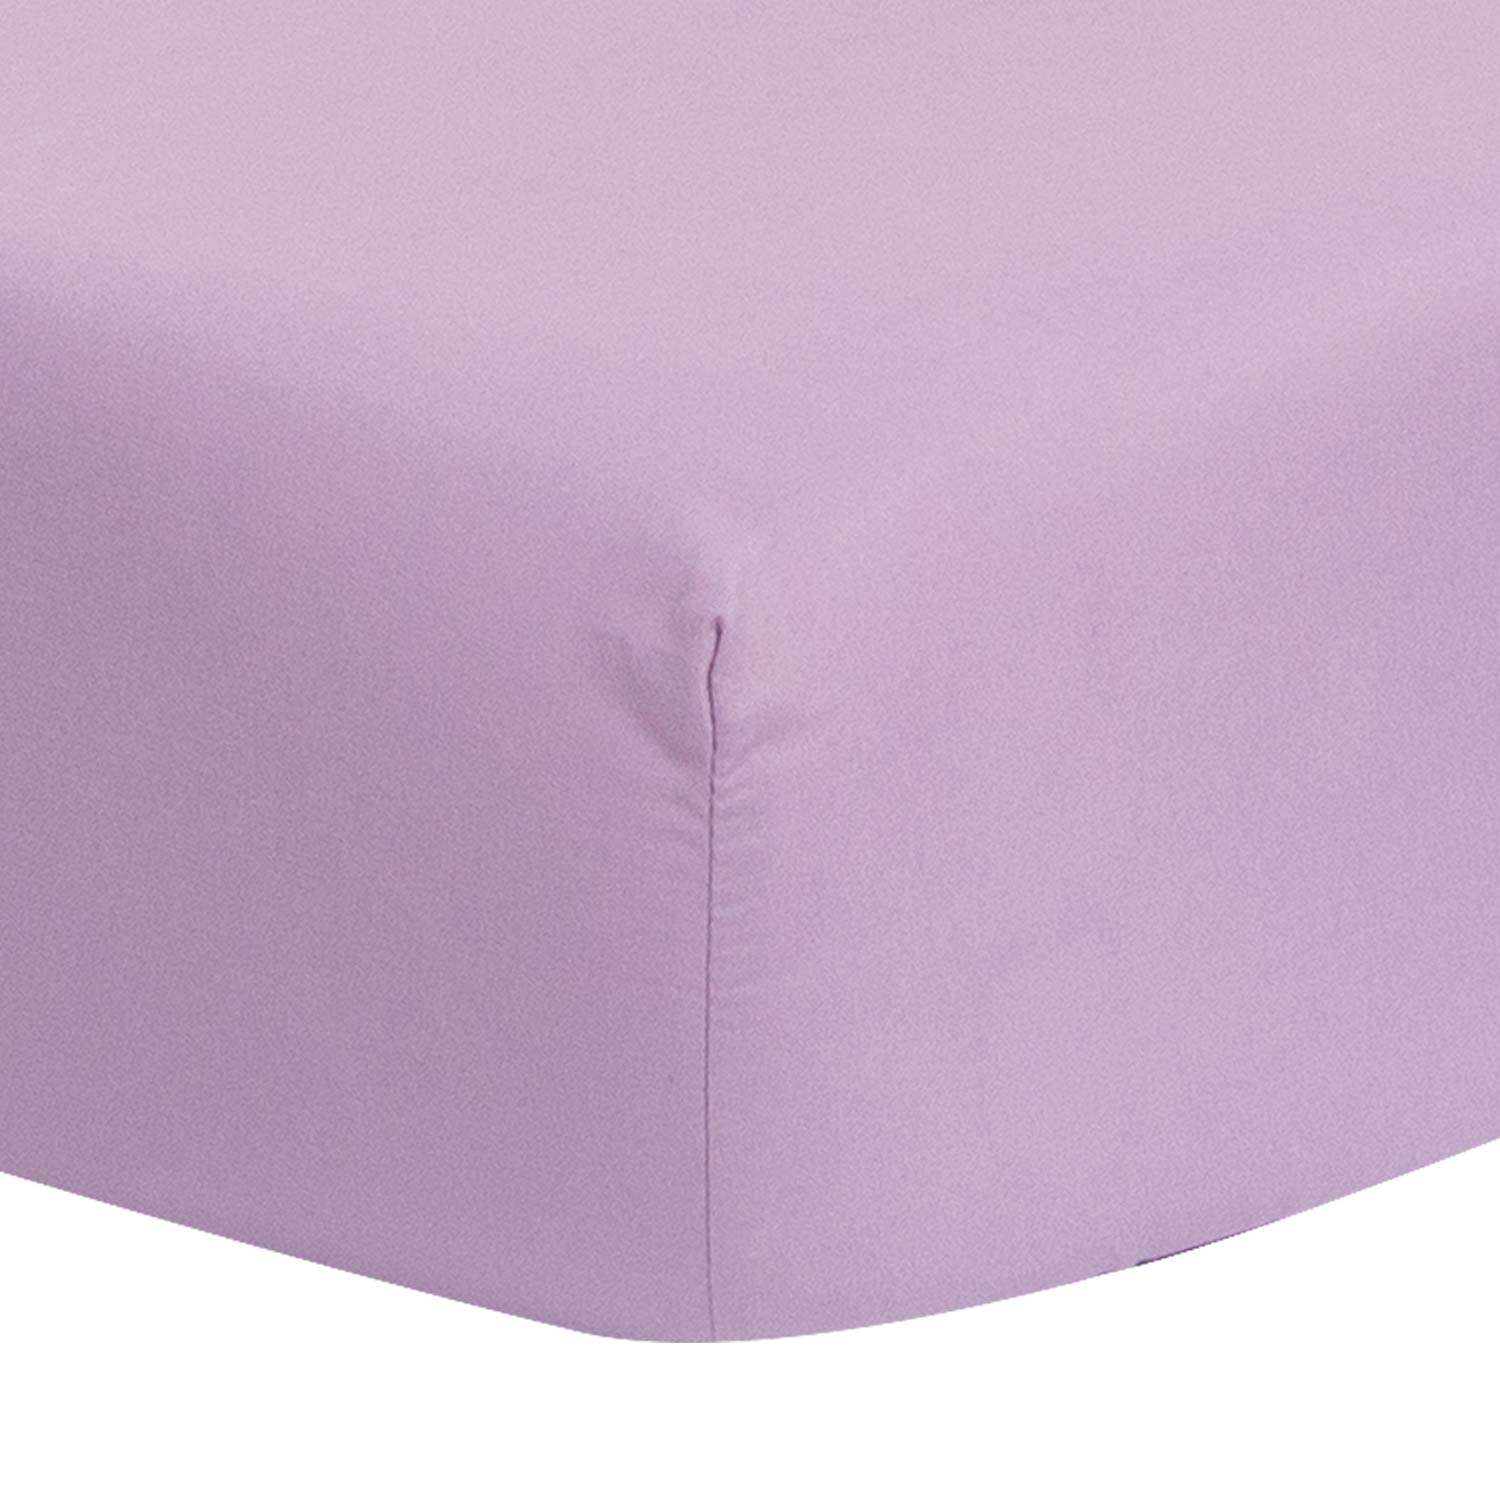 TILLYOU Silky Soft Microfiber Crib Sheet, Breathable Cozy Toddler Sheets for Girls, 28 x 52in Fits Standard Crib & Toddler Mattress, Lavender